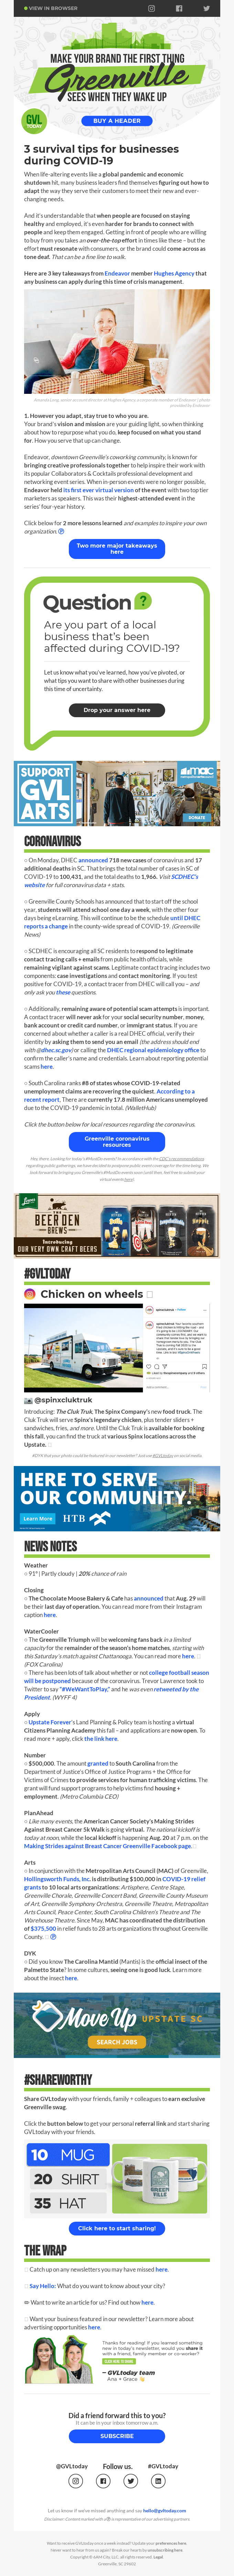 Business survival tips during COVID-19 + a fried chicken food truck